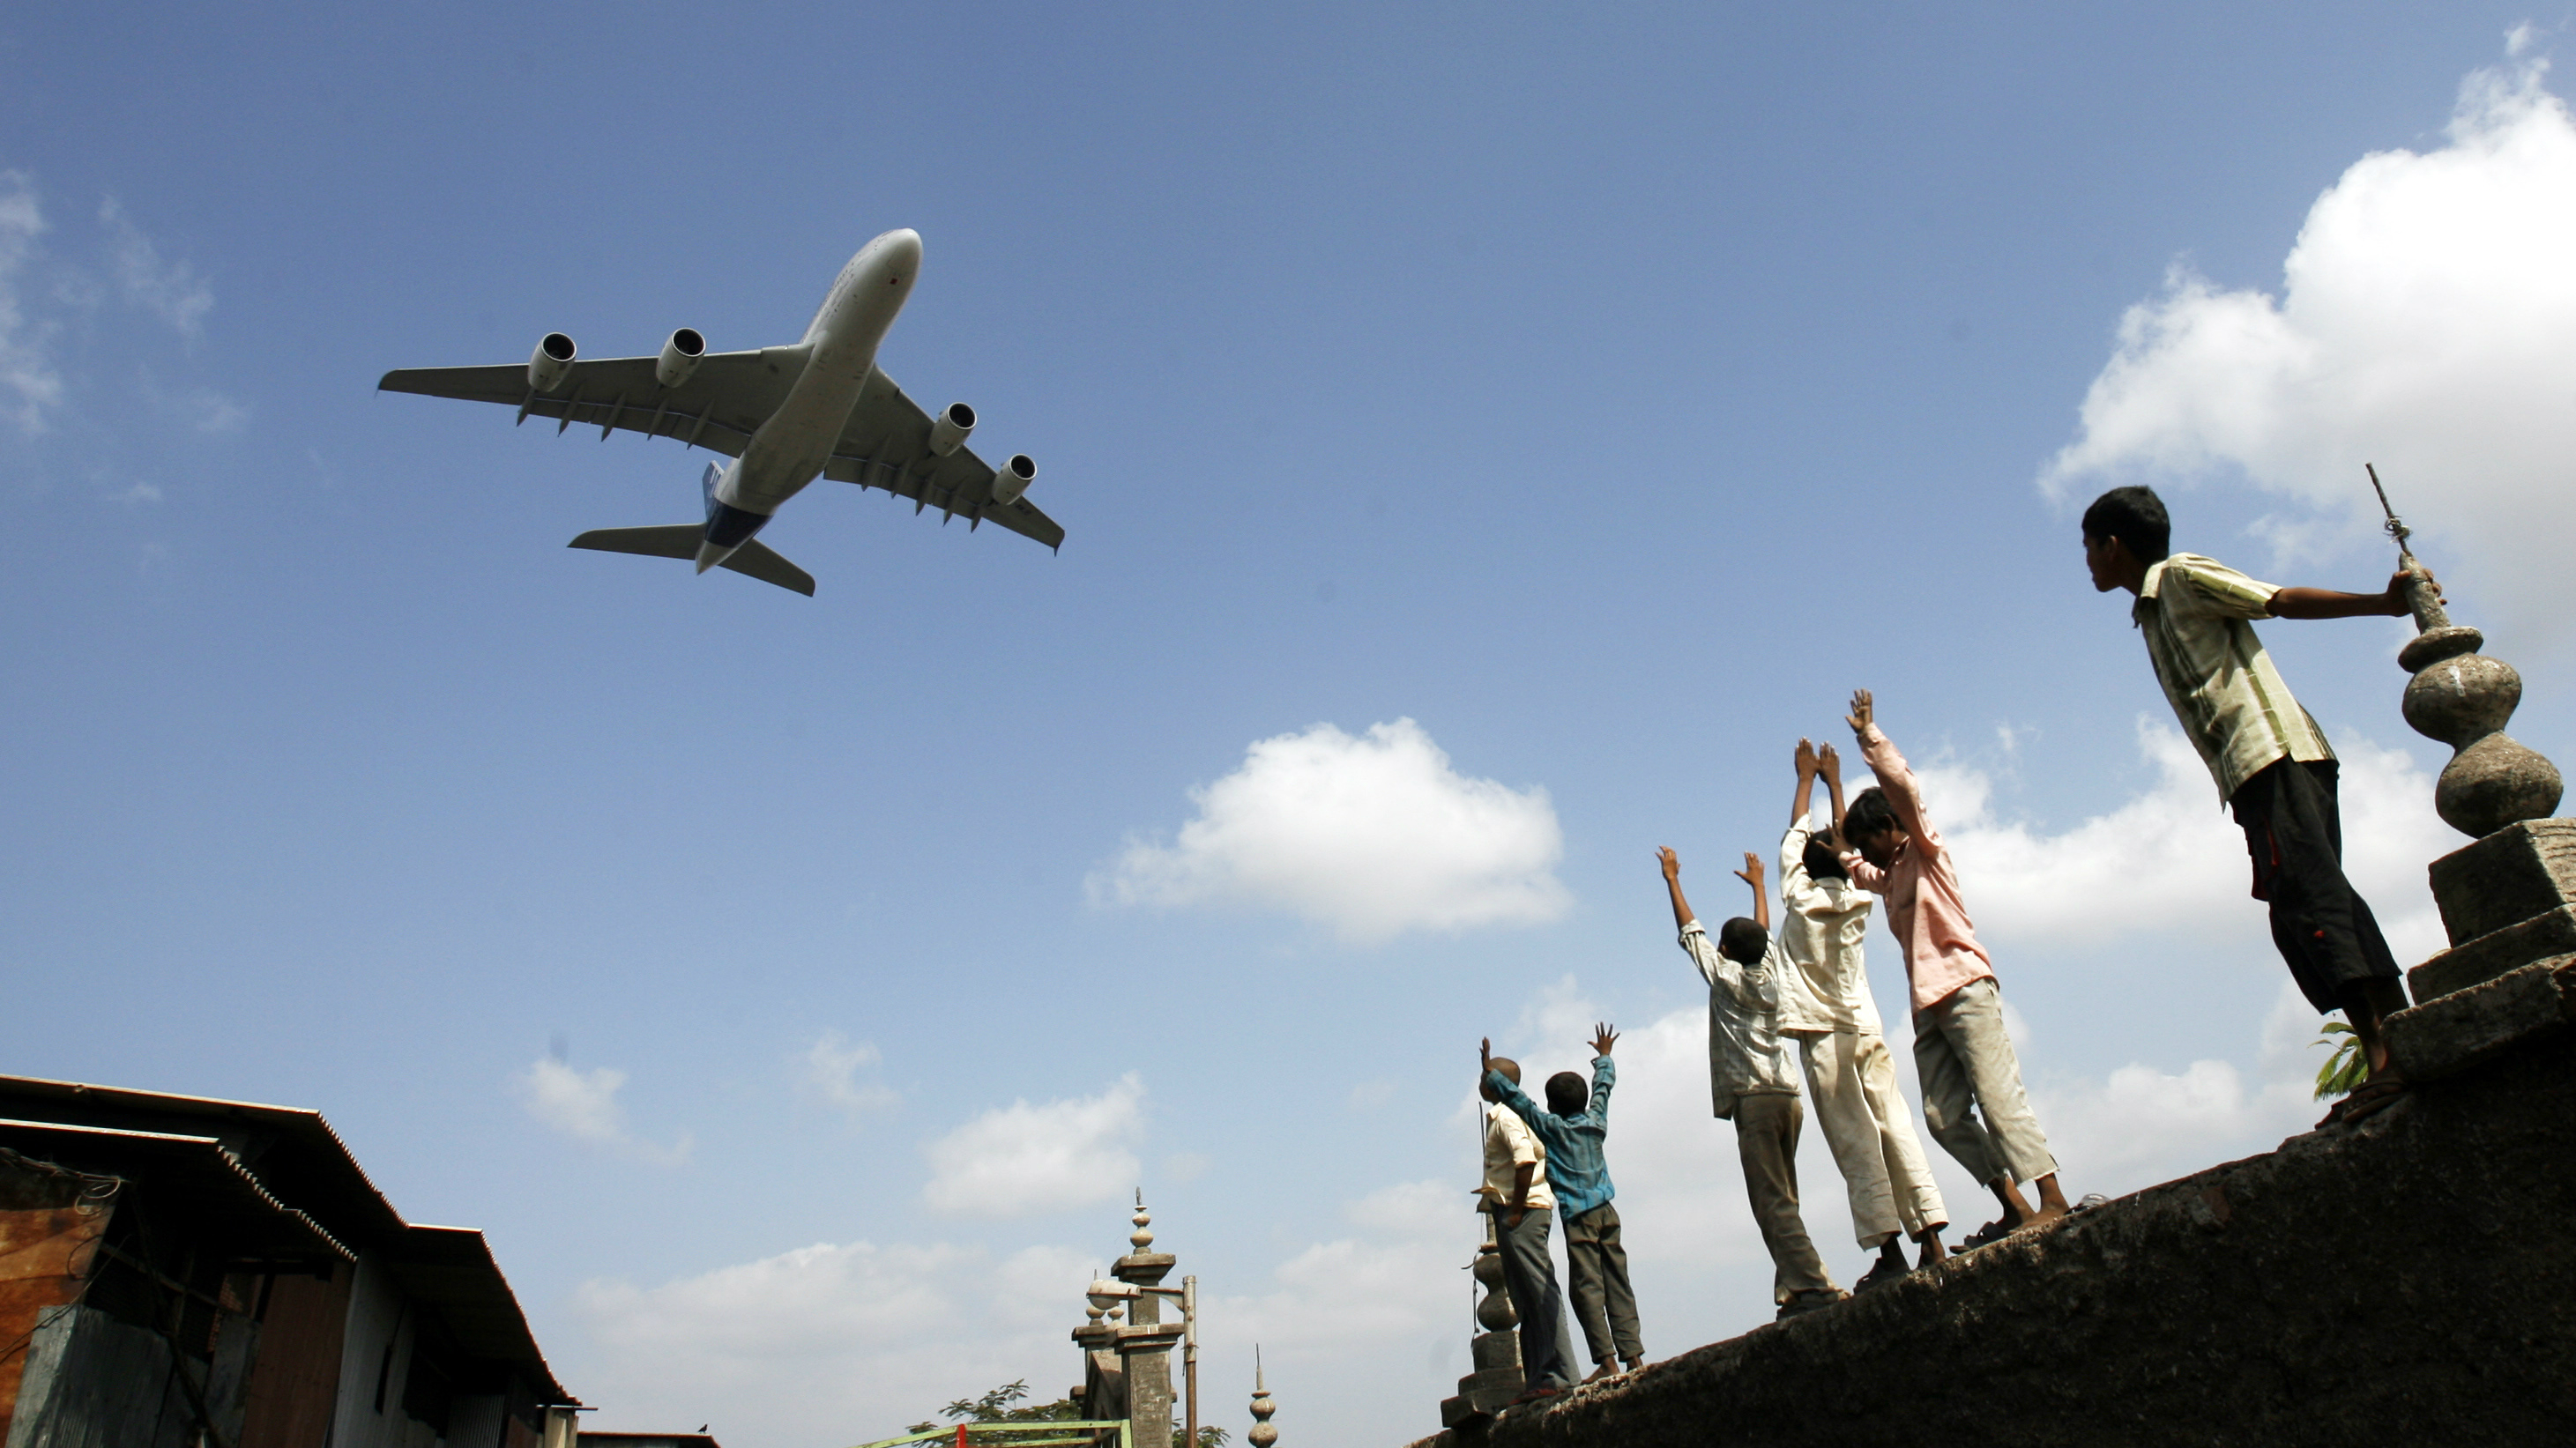 Children react as an Airbus A380 aircraft flies over them near Mumbai airport May 8, 2007. European plane-maker Airbus hopes to win 20 orders for its A380 this year and is in talks with new airlines in India to sell the plane, the world's largest passenger aircraft, a senior executive said on Monday. REUTERS/Arko Datta (INDIA)